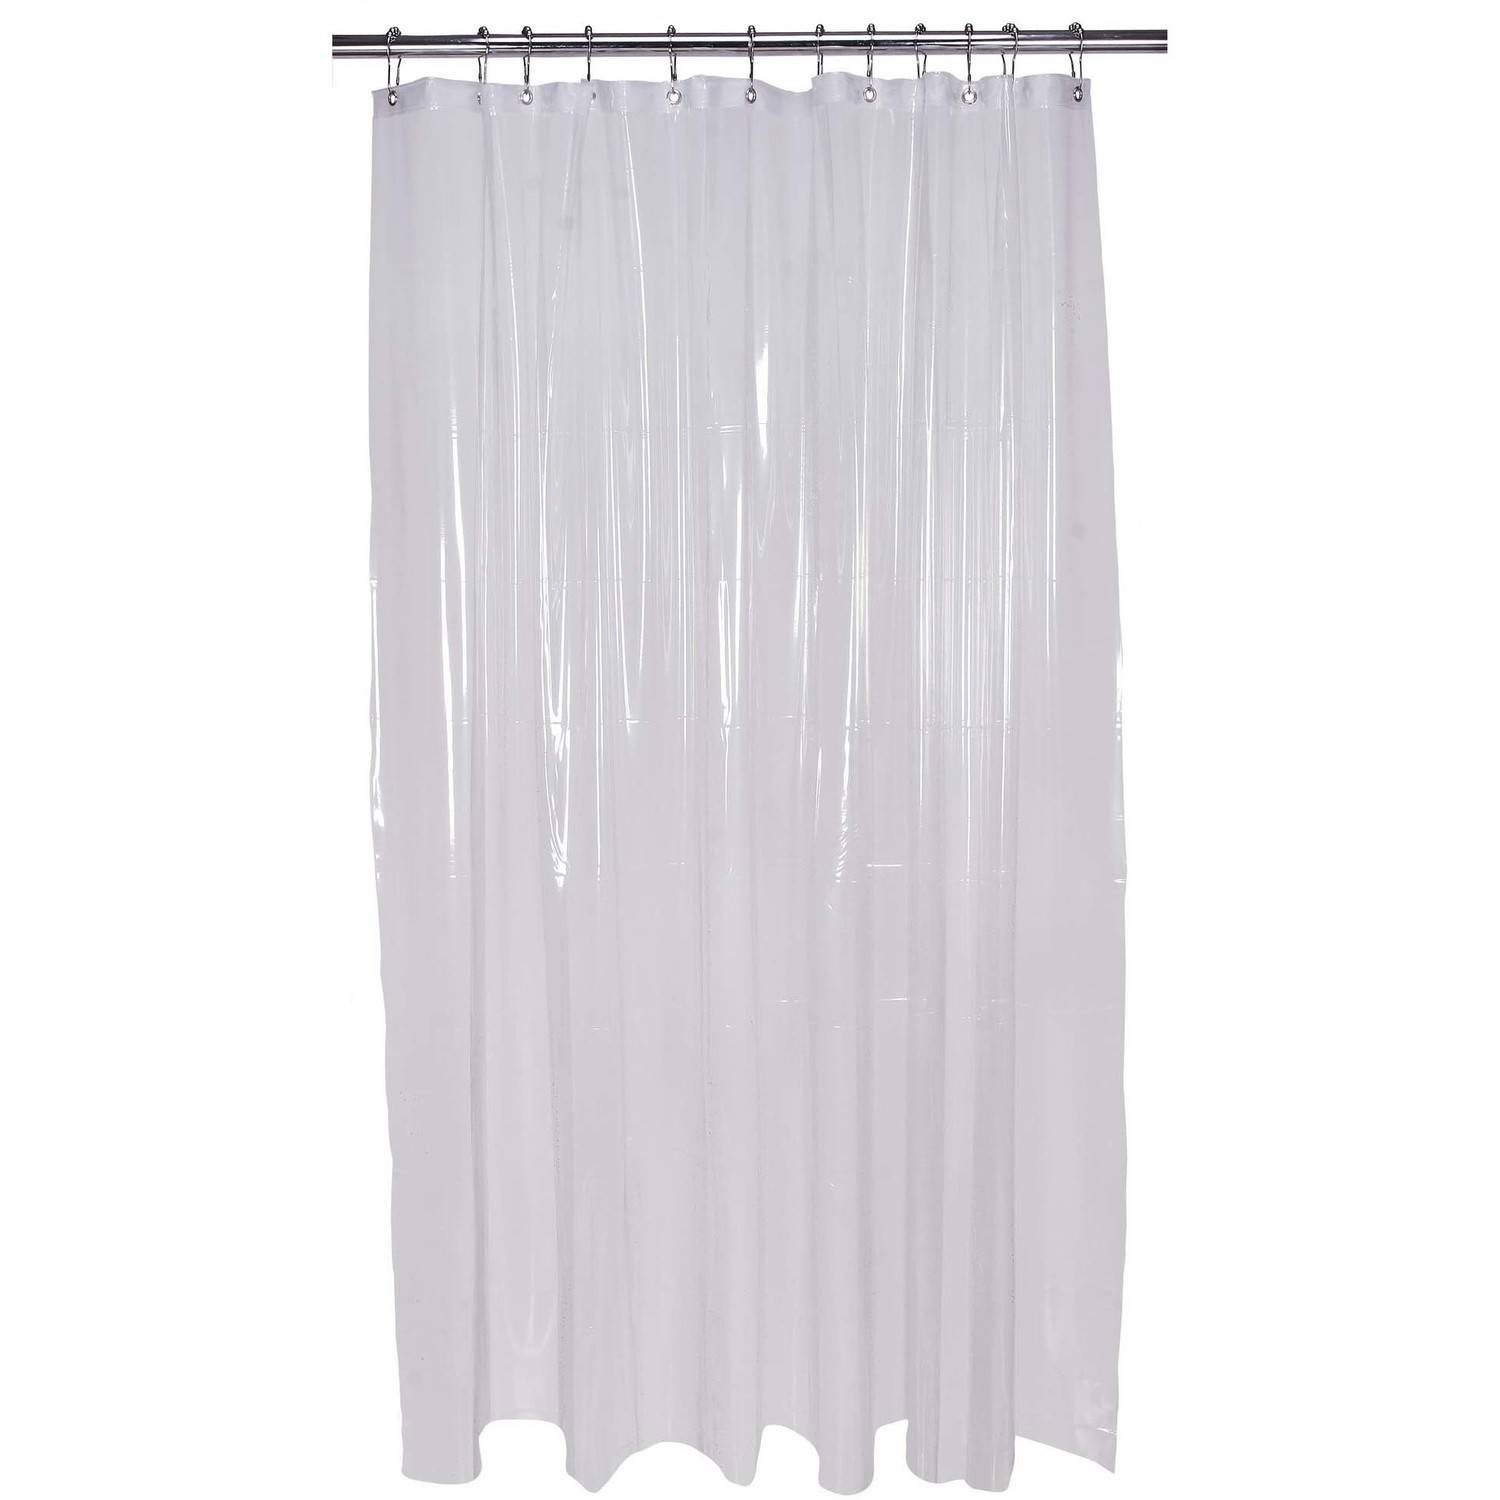 Exceptionnel Bath Bliss Shower Curtain Liner, Extra Long, Clear